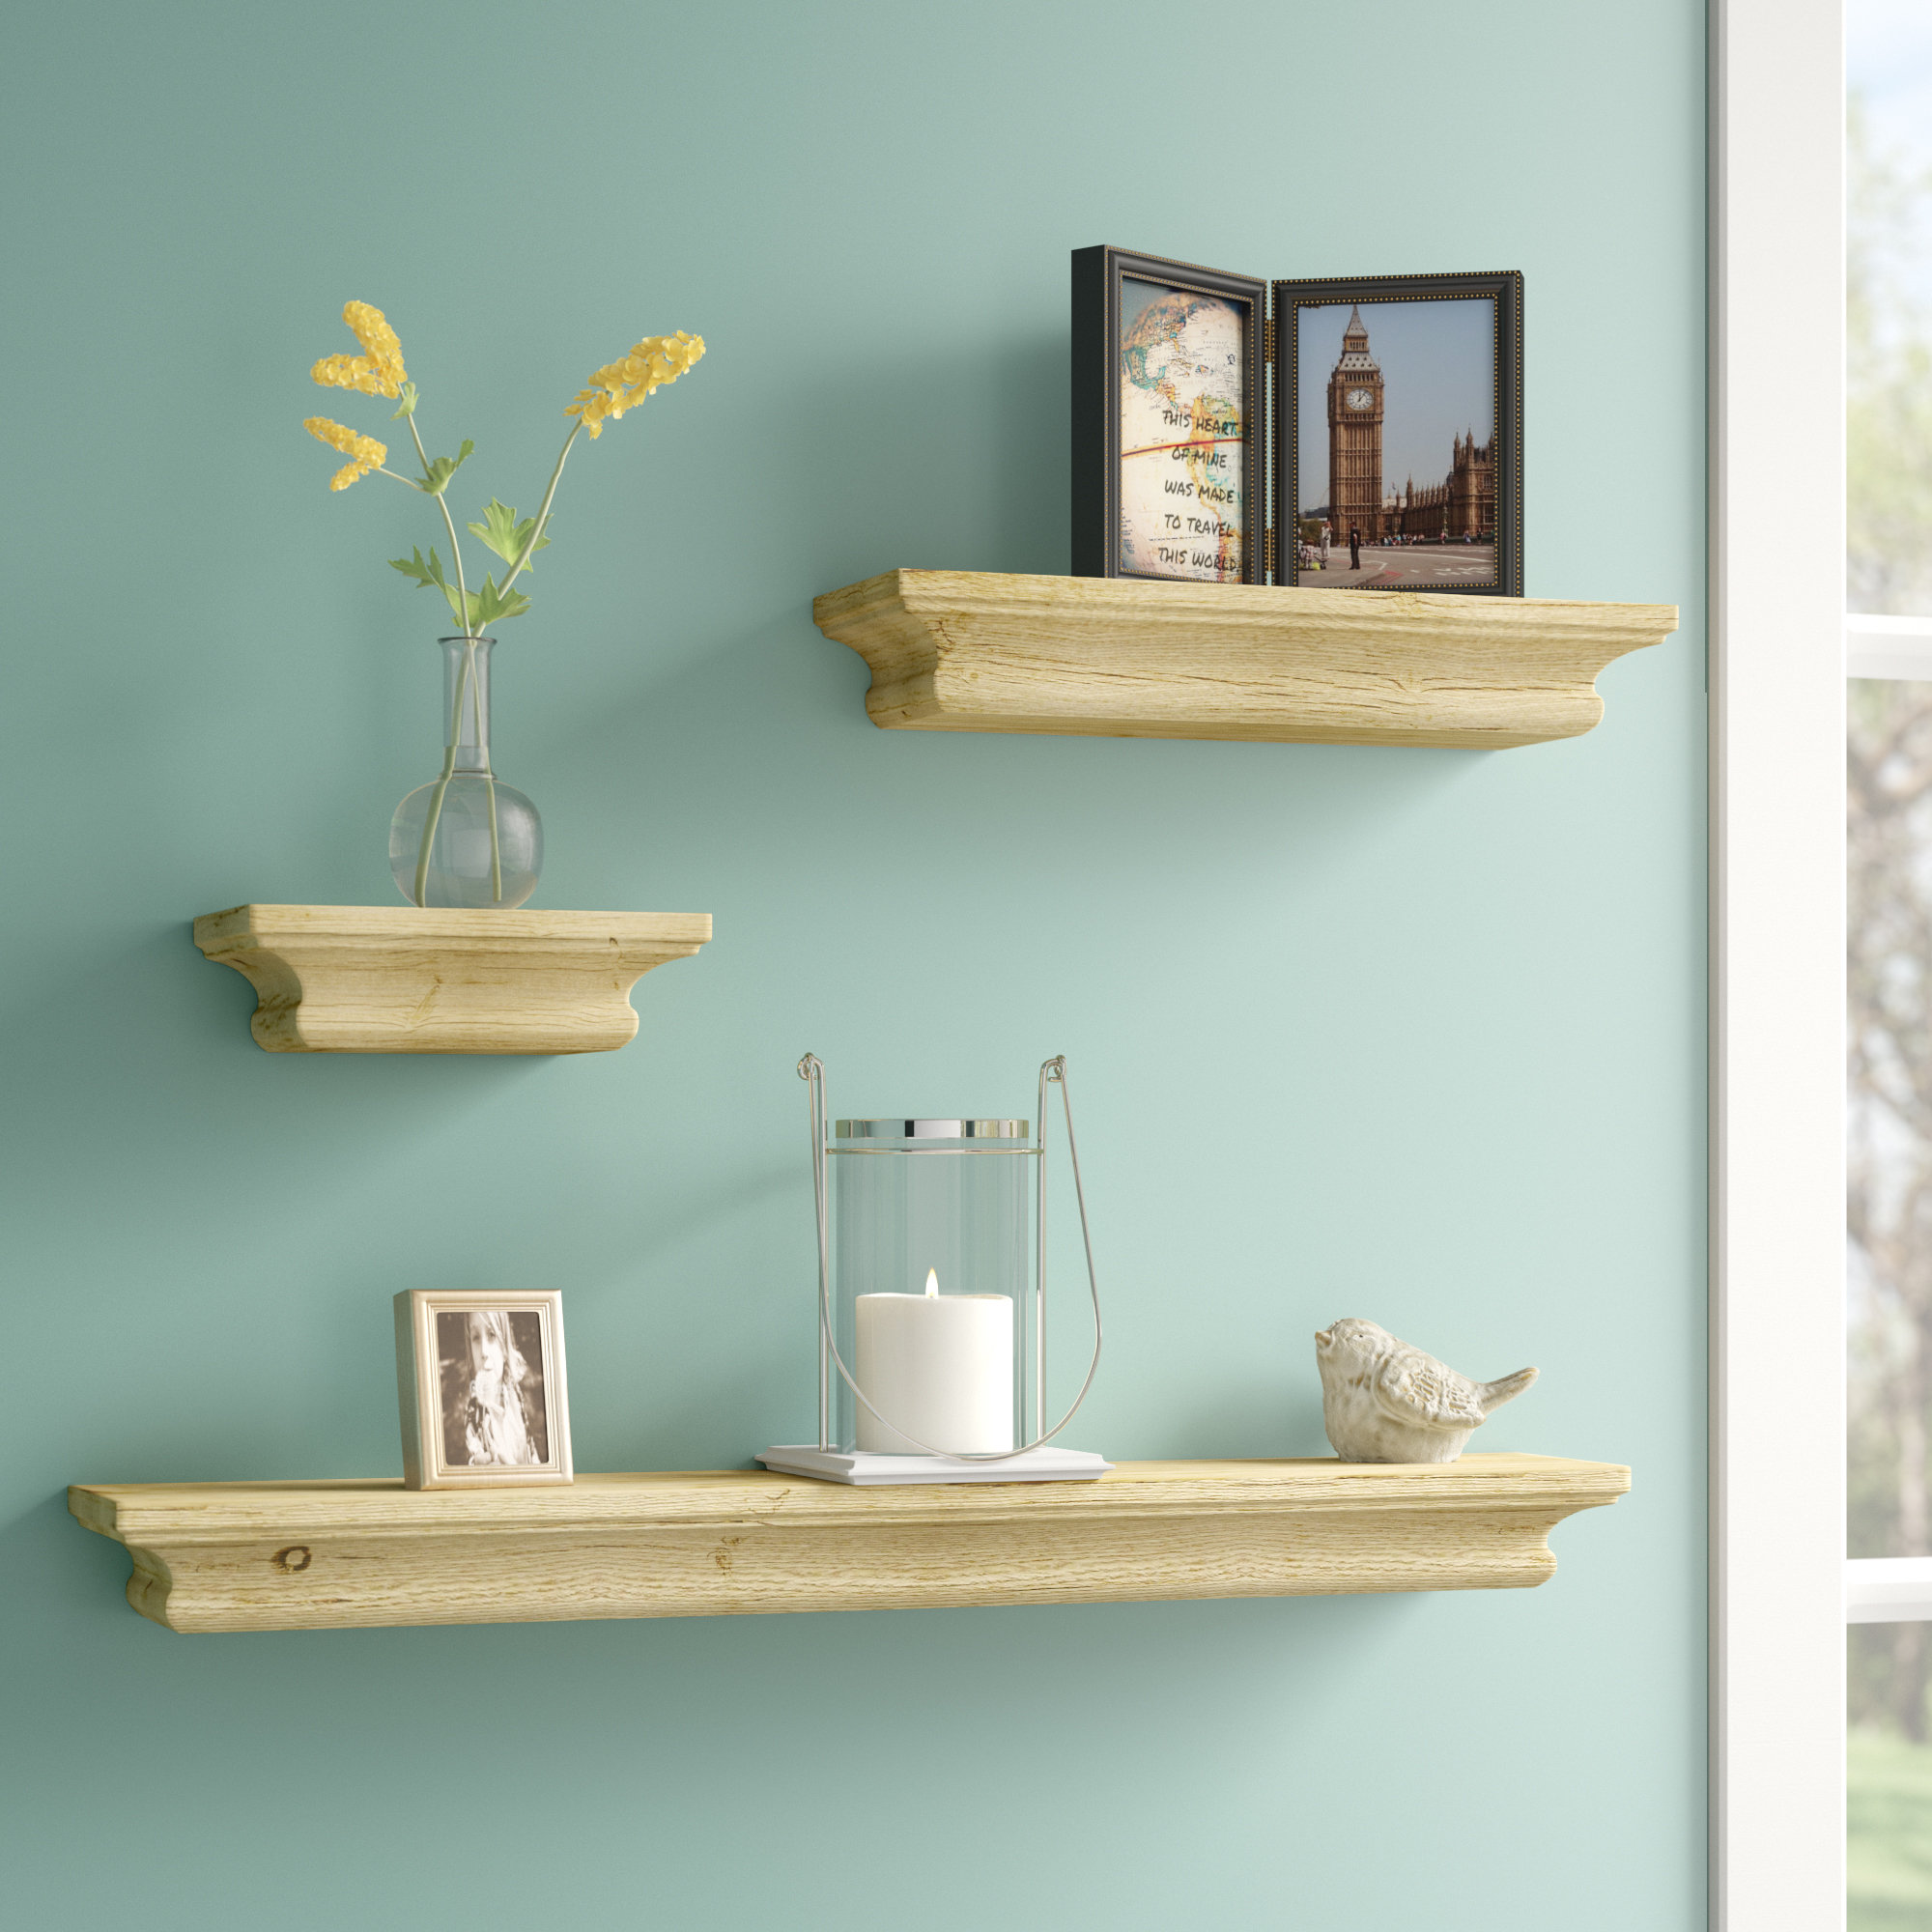 alcott hill piece floating shelf set reviews wall bookshelf cupboard above toilet bolts crown molding target under bathroom mirror oak effect lamp table design counter corner